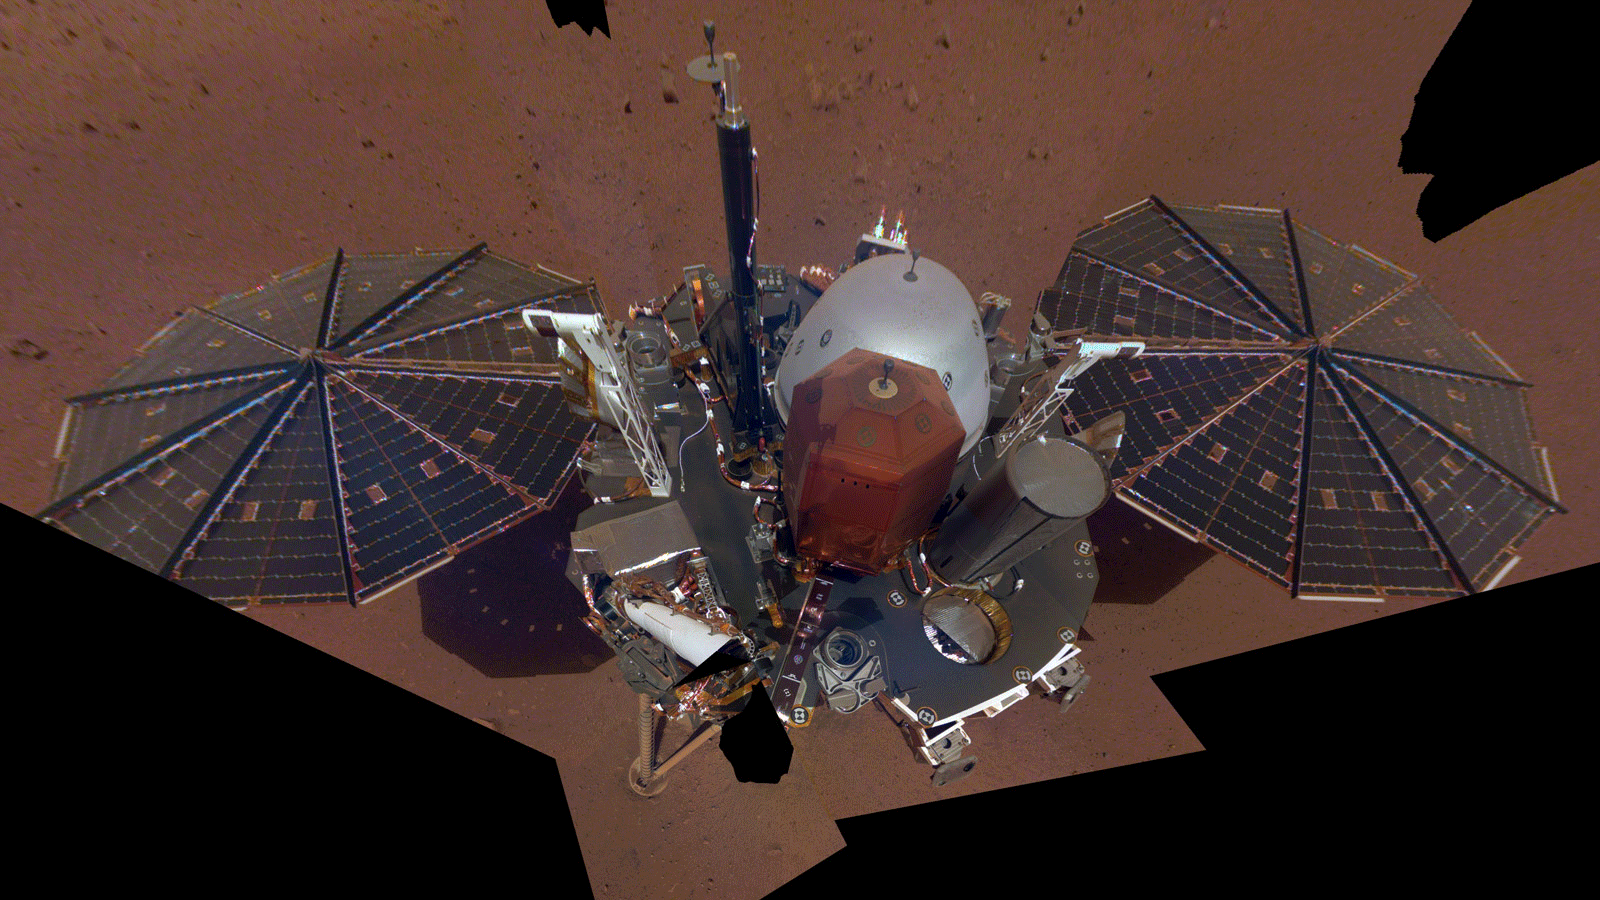 slide 4 - This is NASA InSight's first full selfie on Mars. It displays the lander's solar panels and deck. On top of the deck are its science instruments, weather sensor booms and UHF antenna.